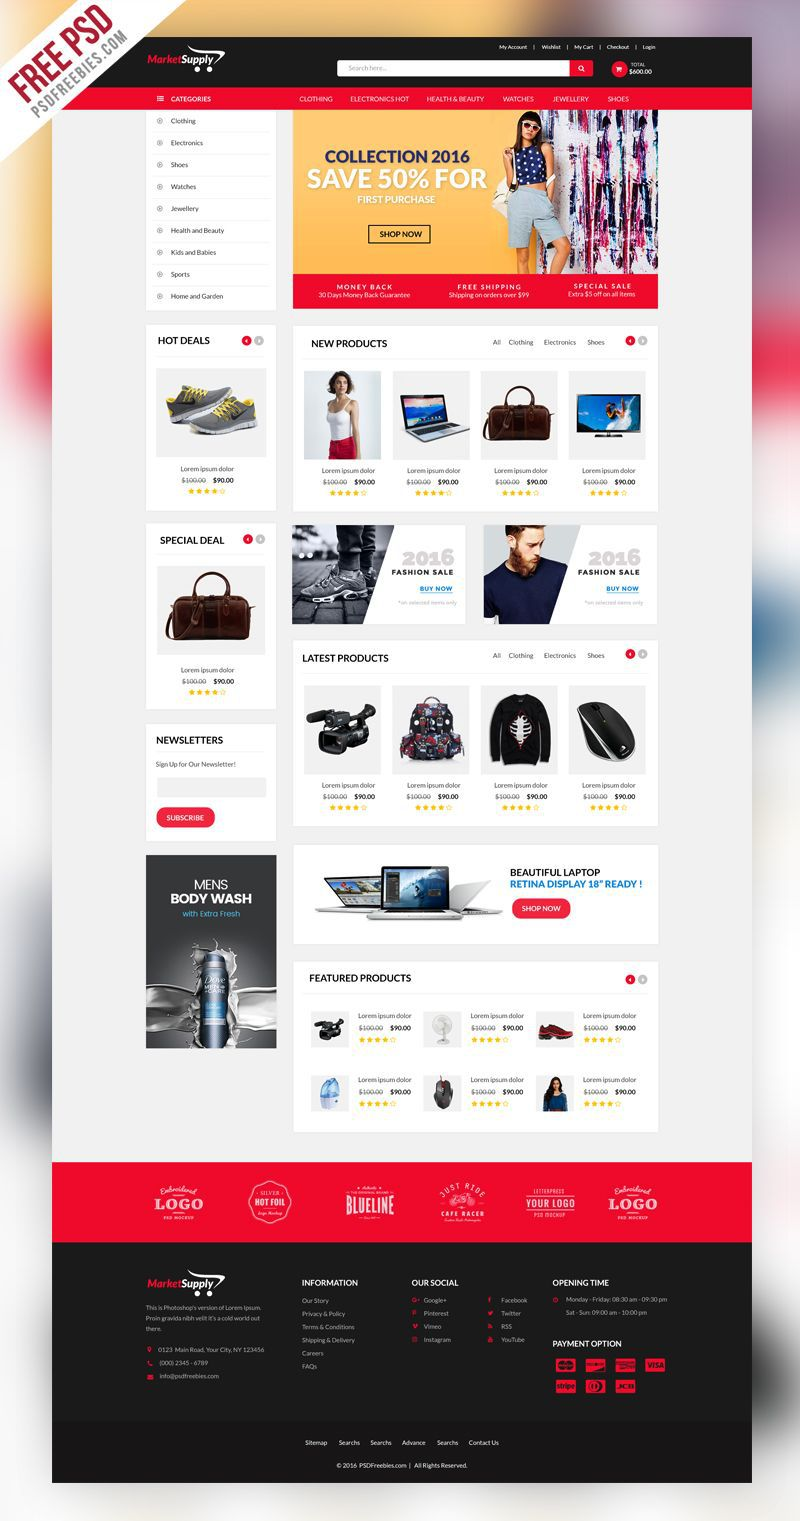 009 Magnificent Free Ecommerce Website Template Download Idea  Shopping Cart Bootstrap 3Full